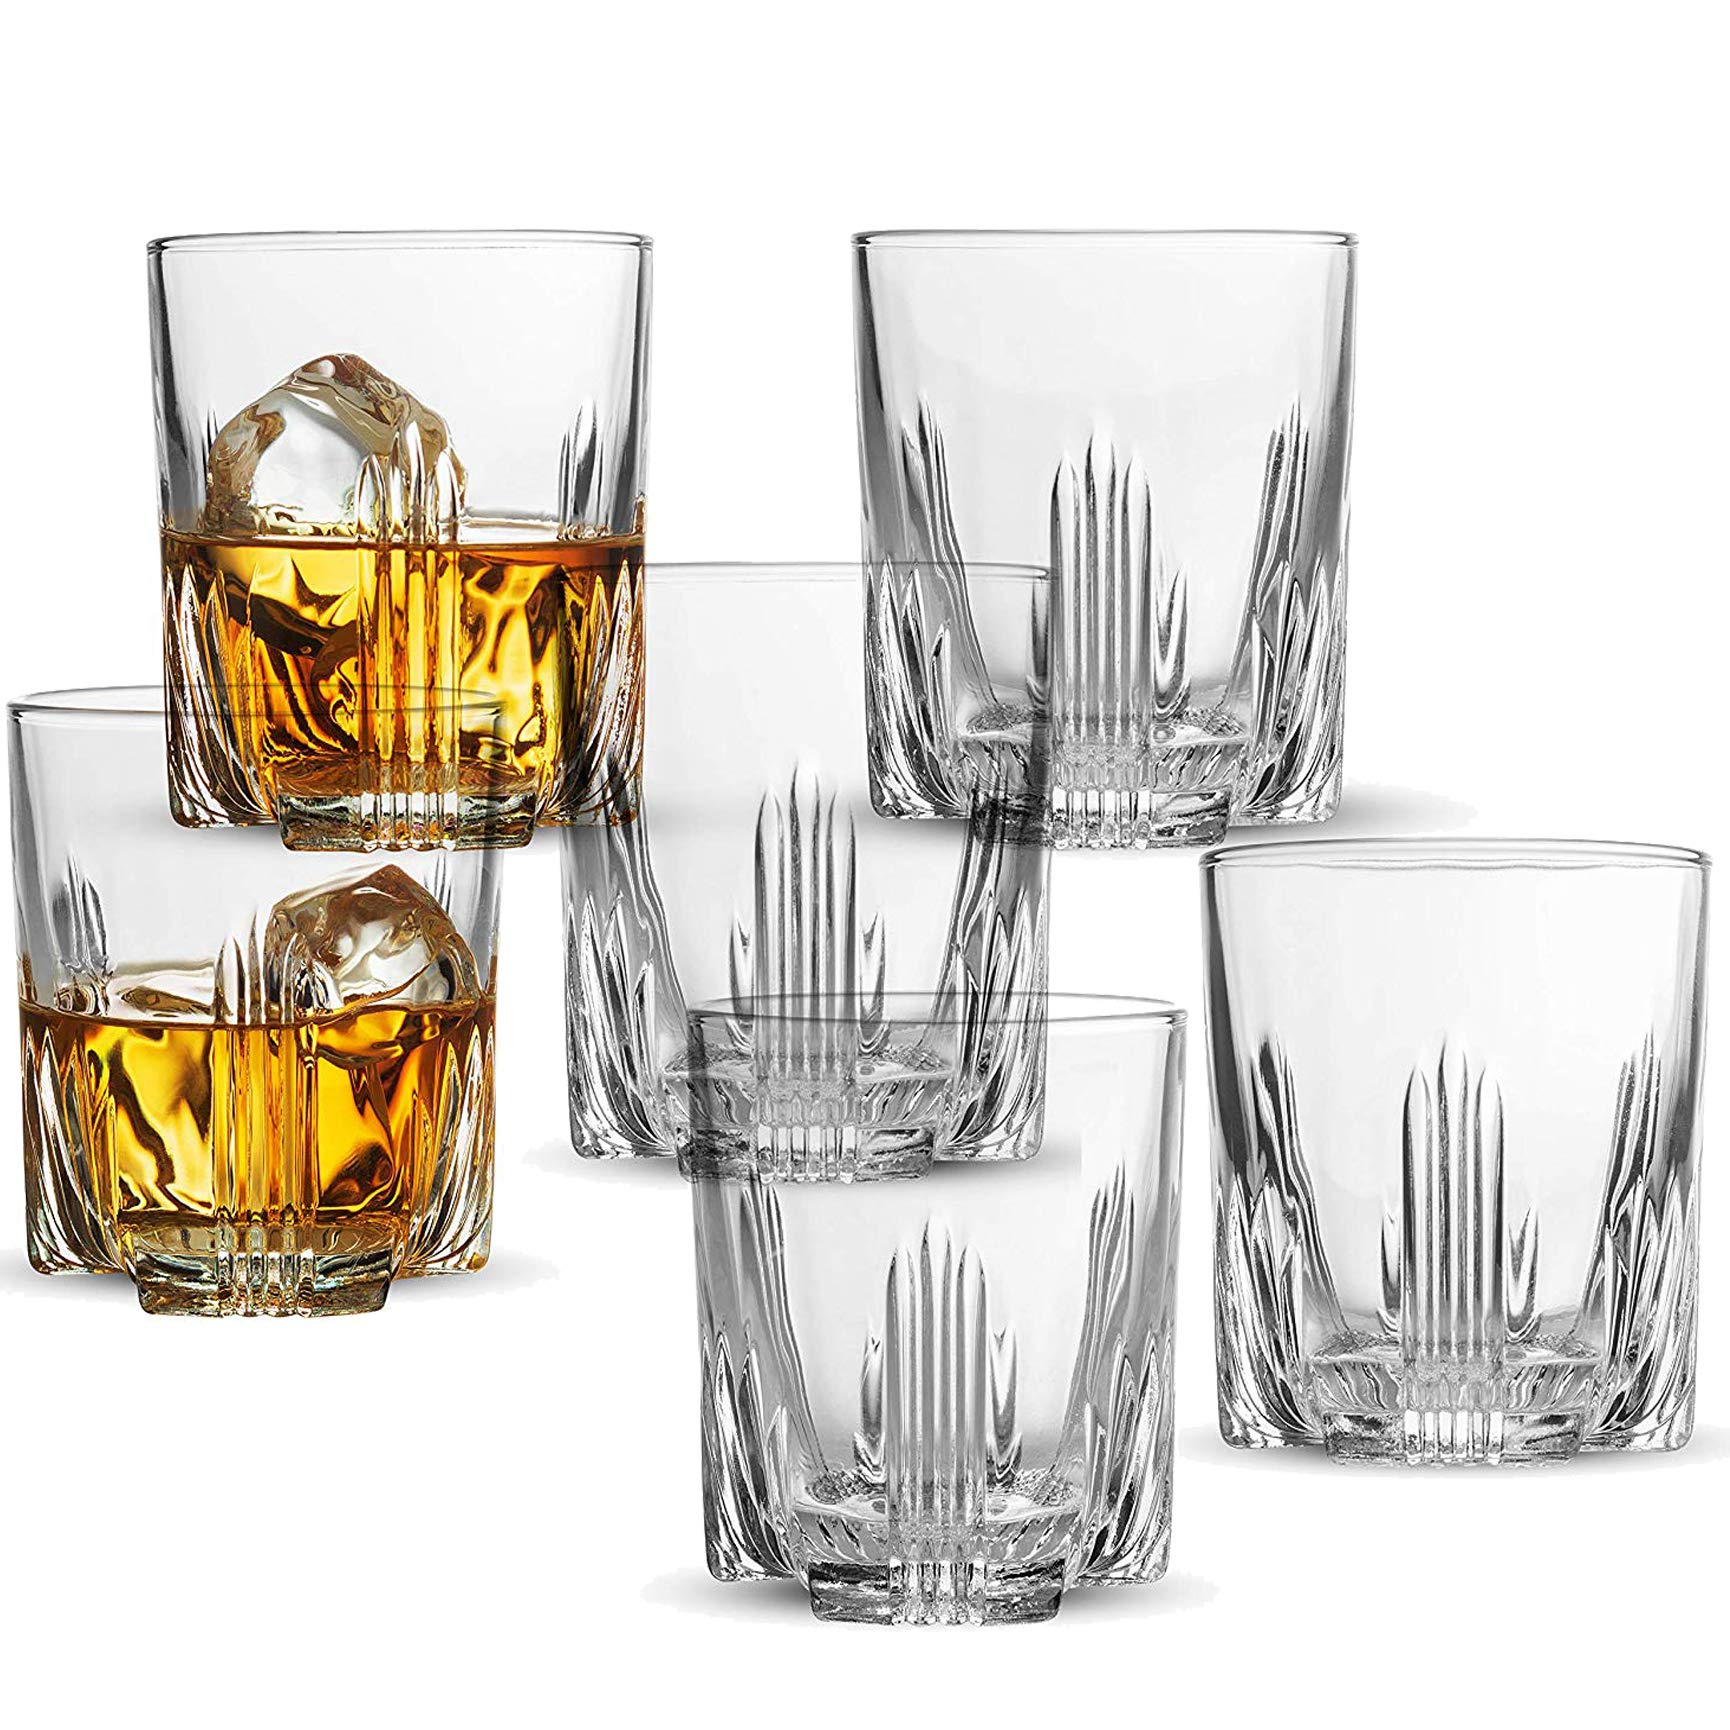 Whiskey Glass Set, Italian Crafted Whiskey Glasses 6 piece Exquisite Cocktail Glasses For Whiskey, Bourbon, Scotch, Cocktails Alcohol, Etc. | 9.5 Oz. Drinking Glasses (6 Whiskey Glasses) by Paksh Novelty